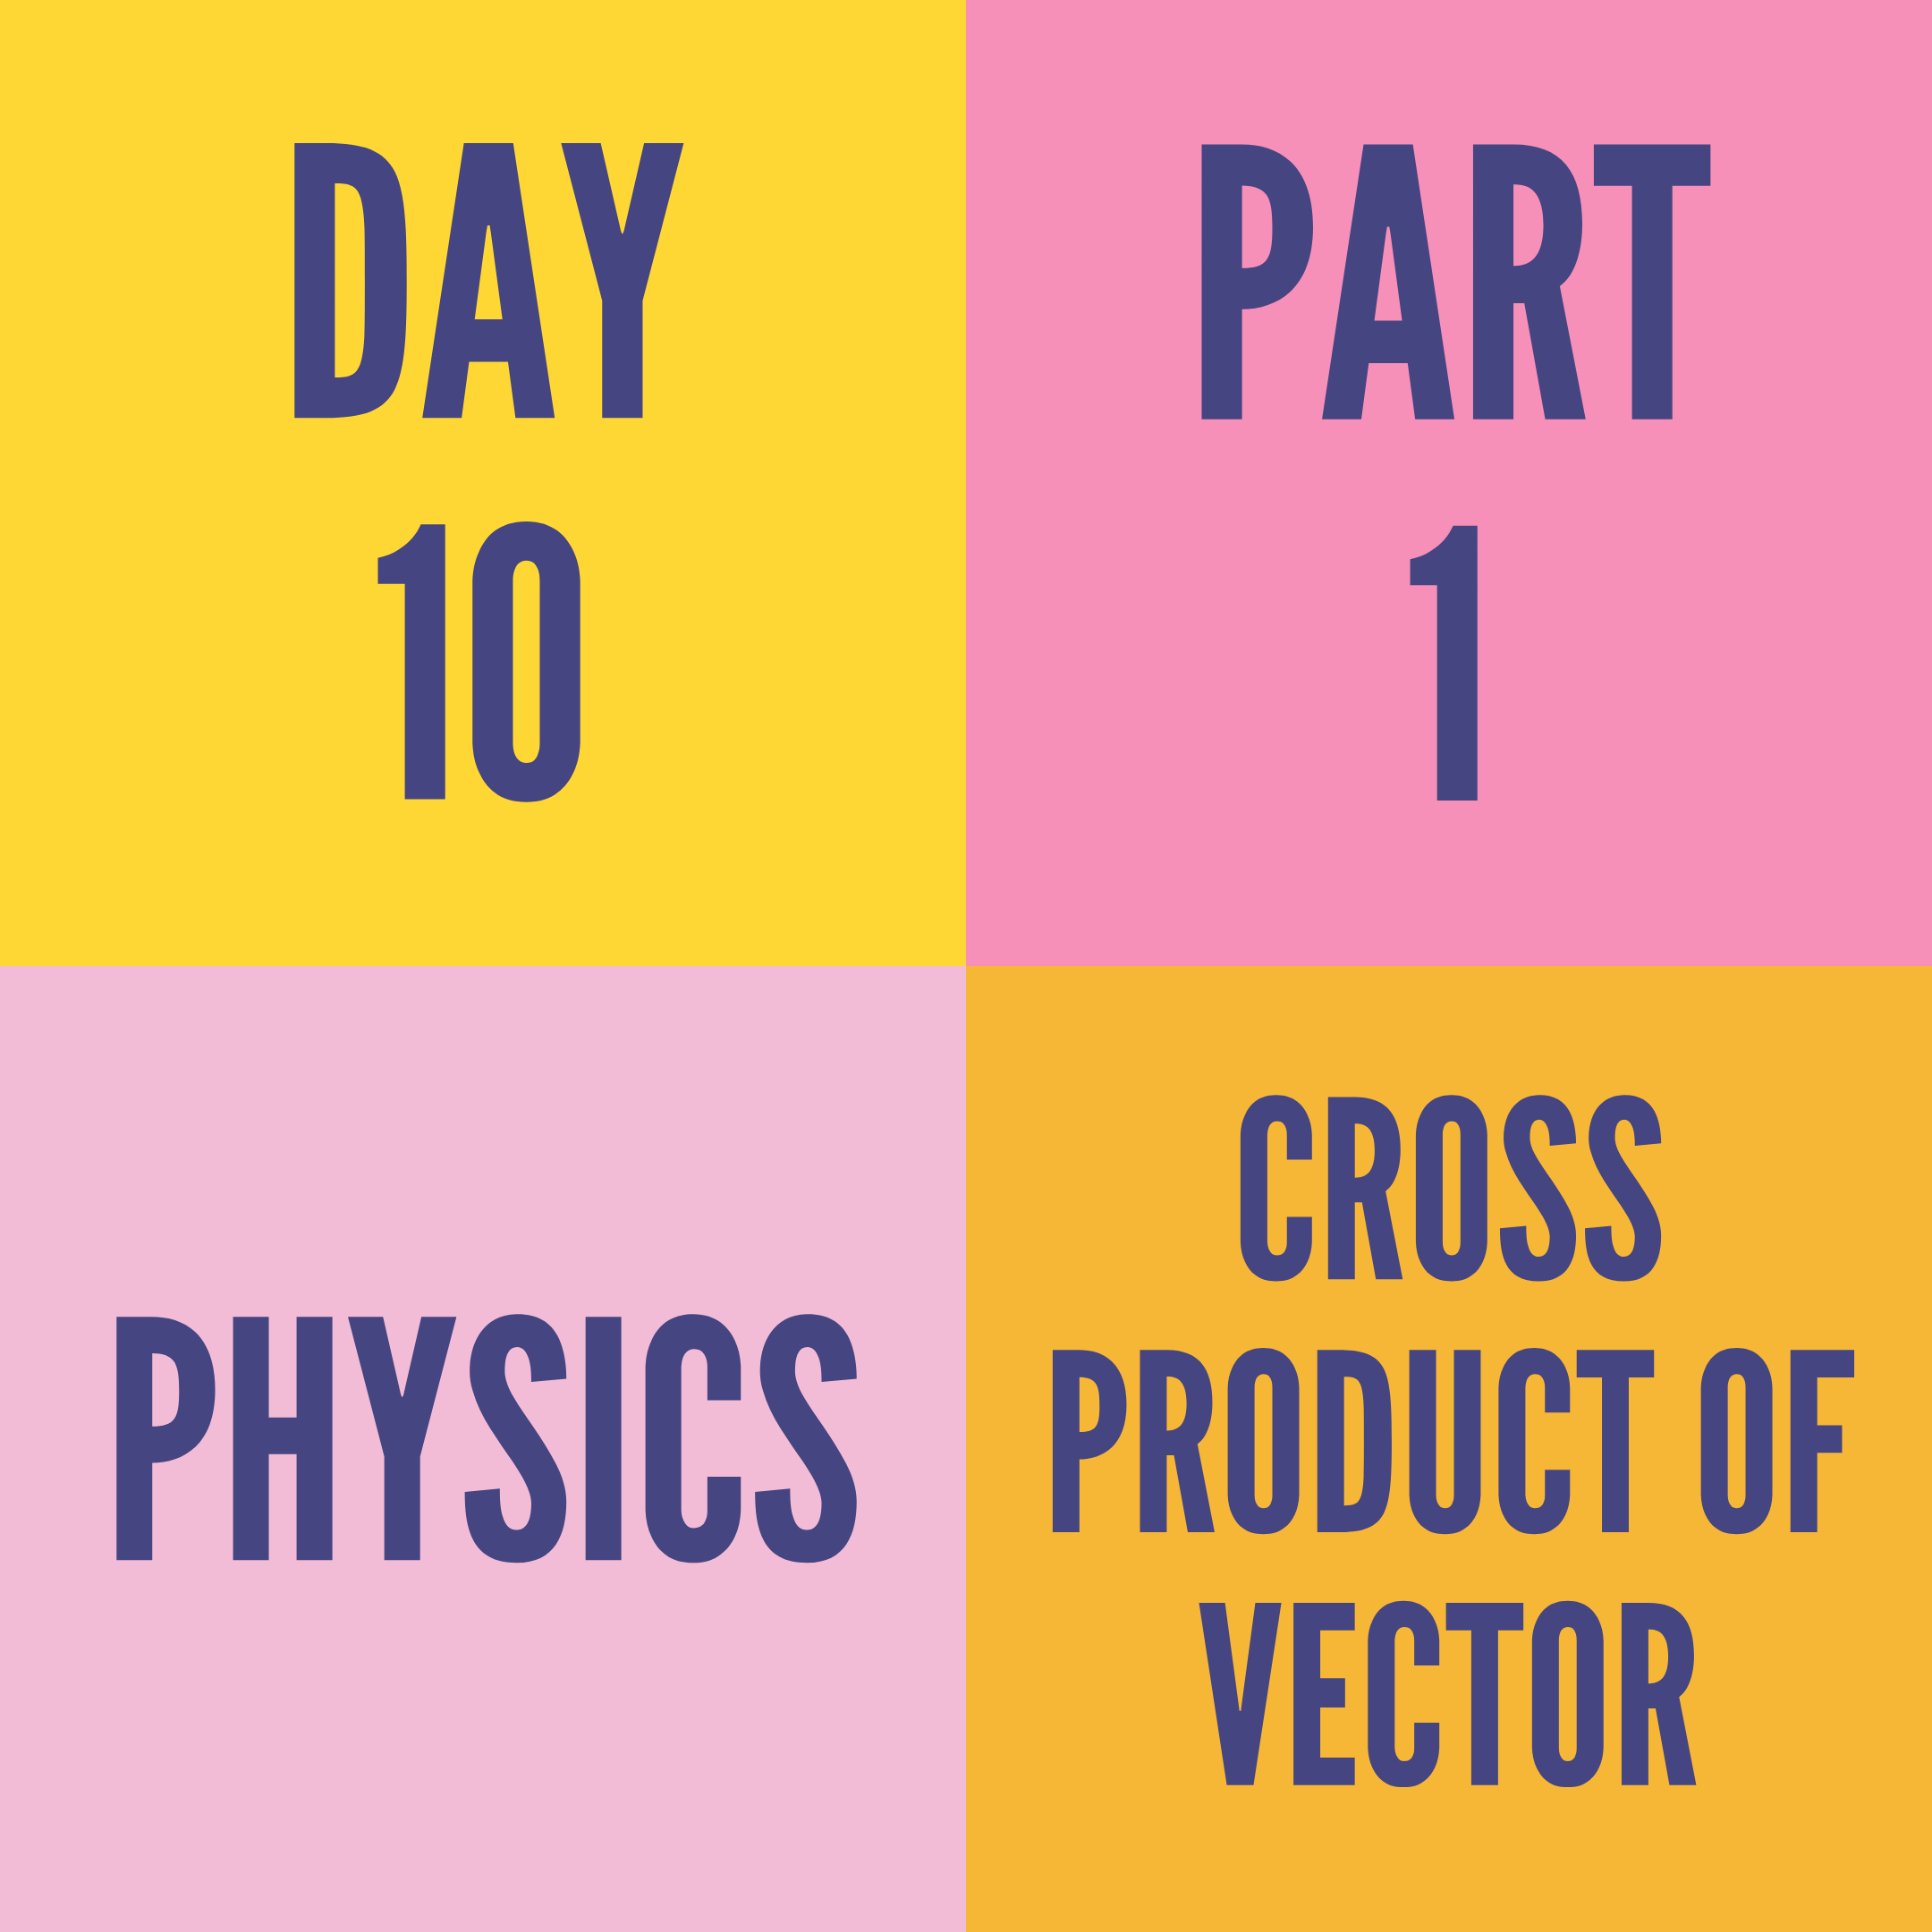 DAY-10 PART-1 CROSS PRODUCT OF VECTOR